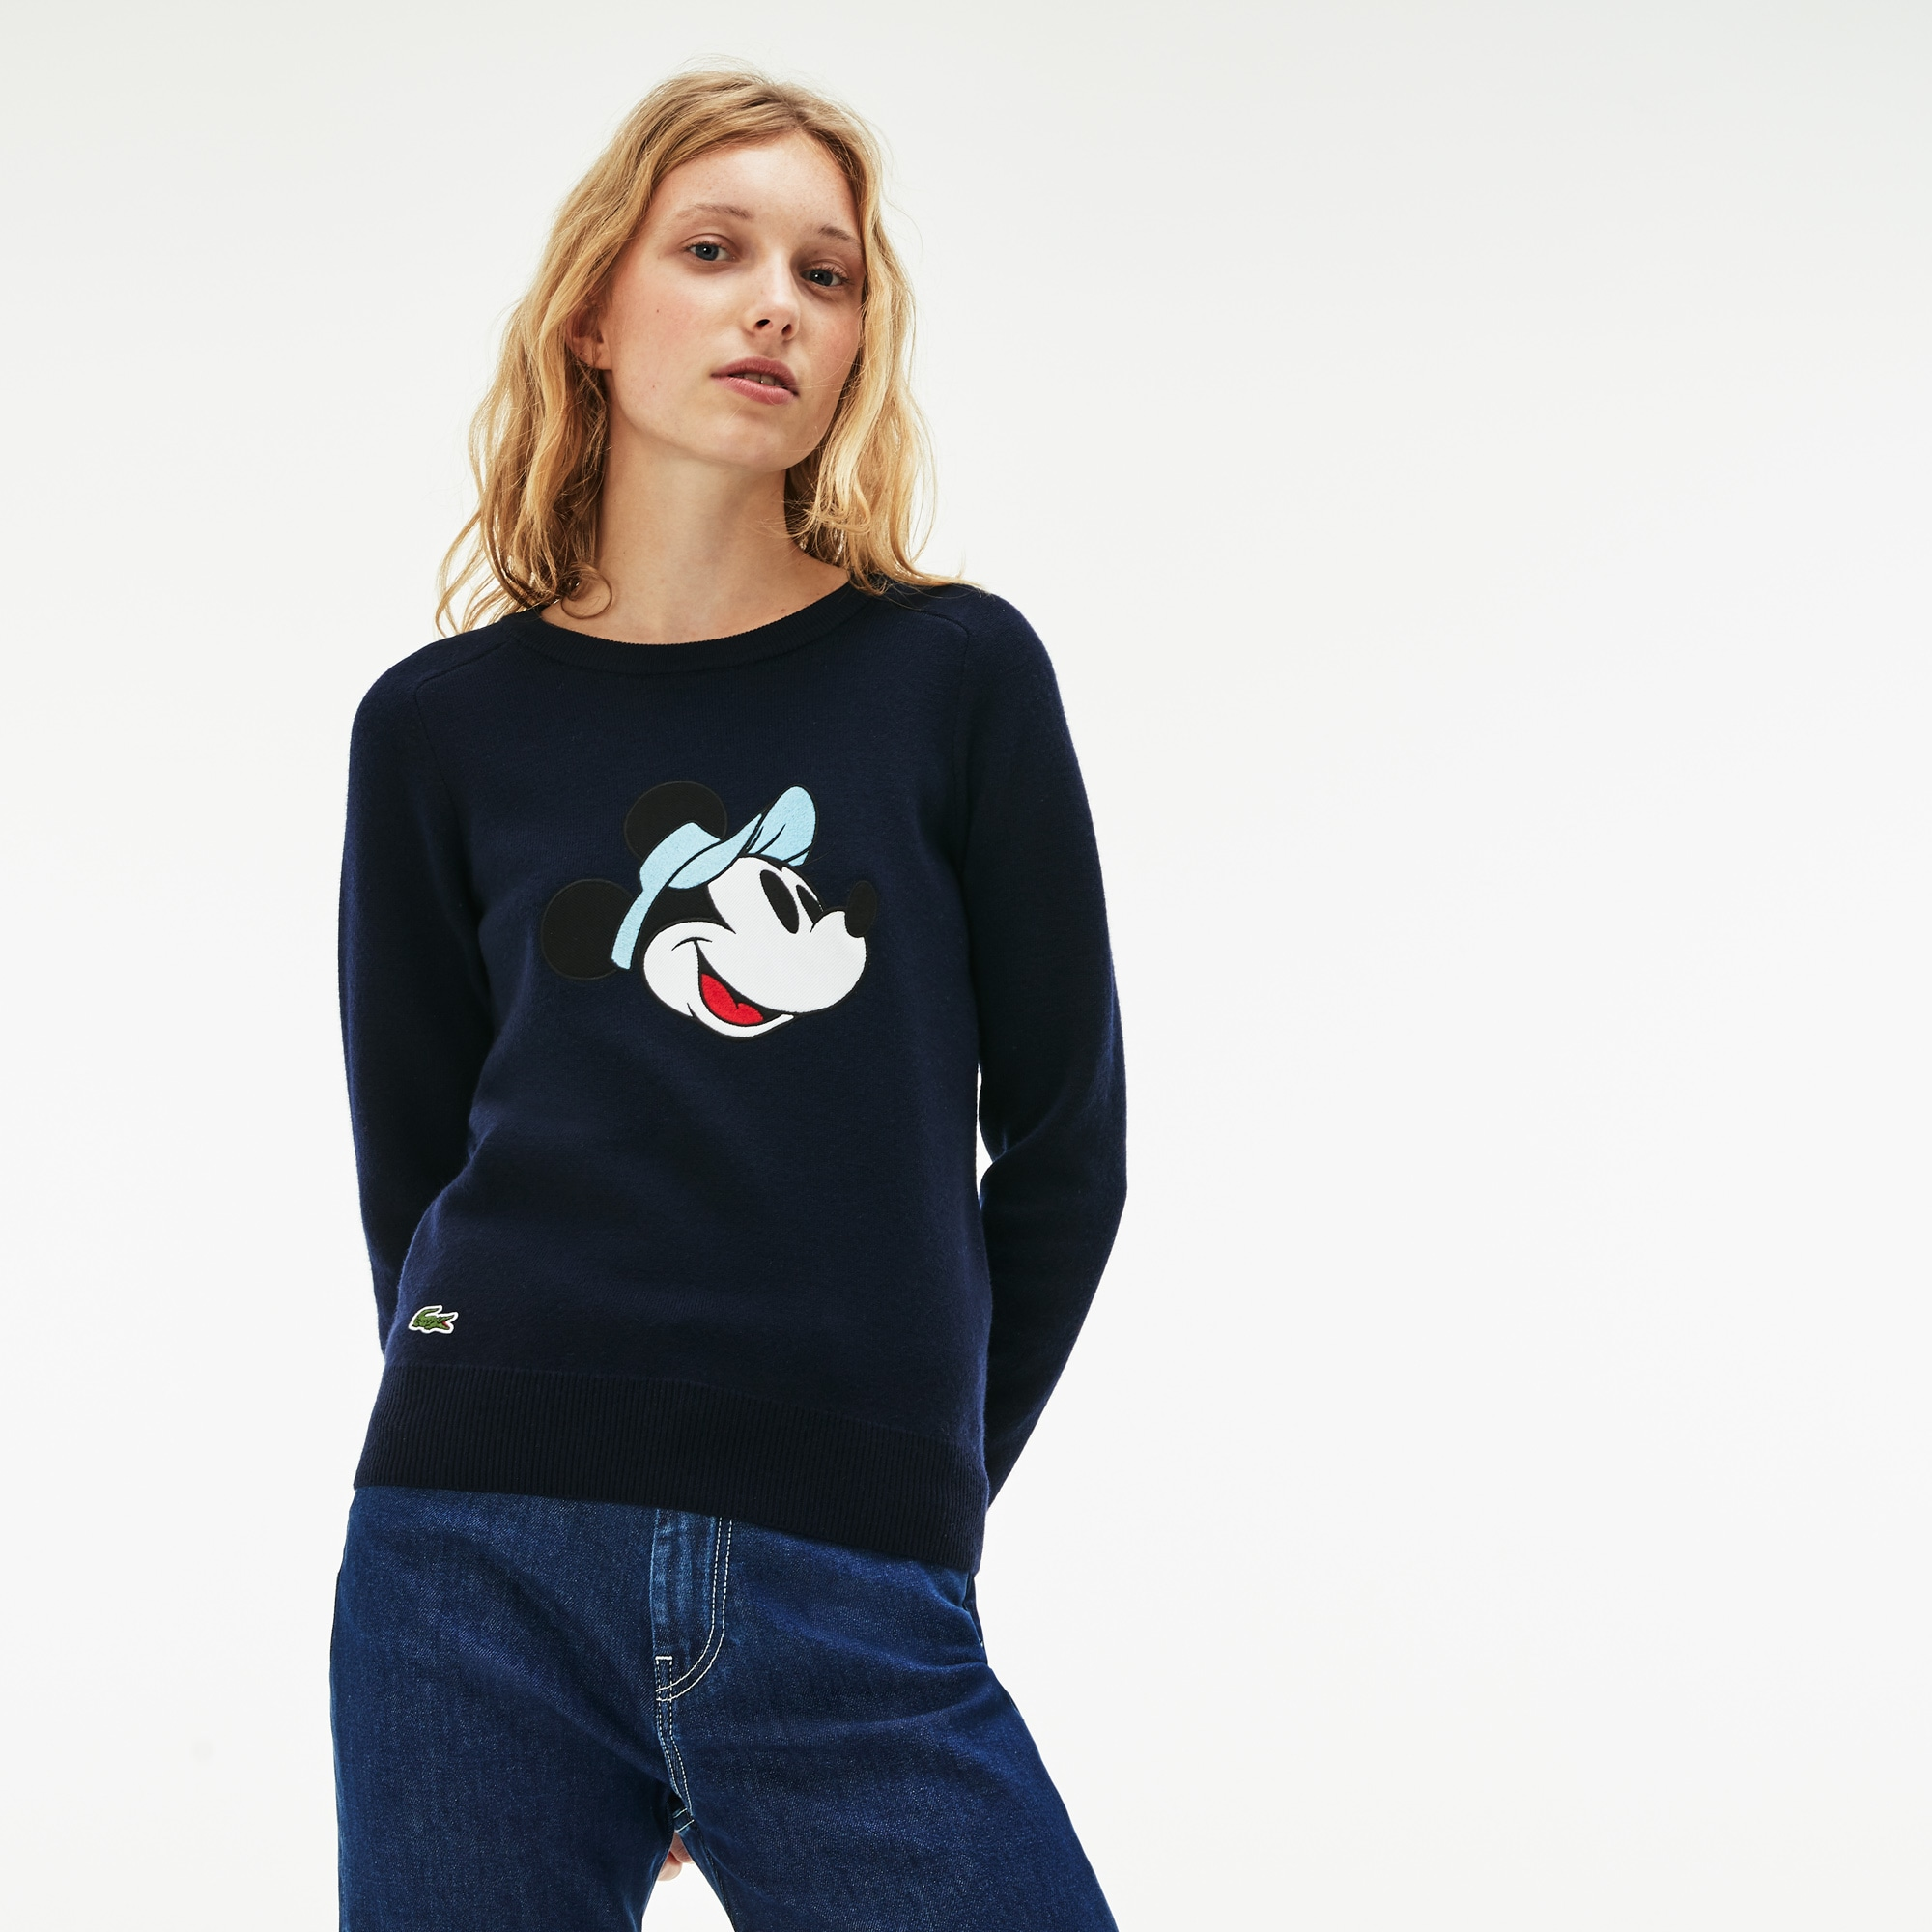 Women's Crew Neck Disney Minnie Embroidery Interlock Sweater